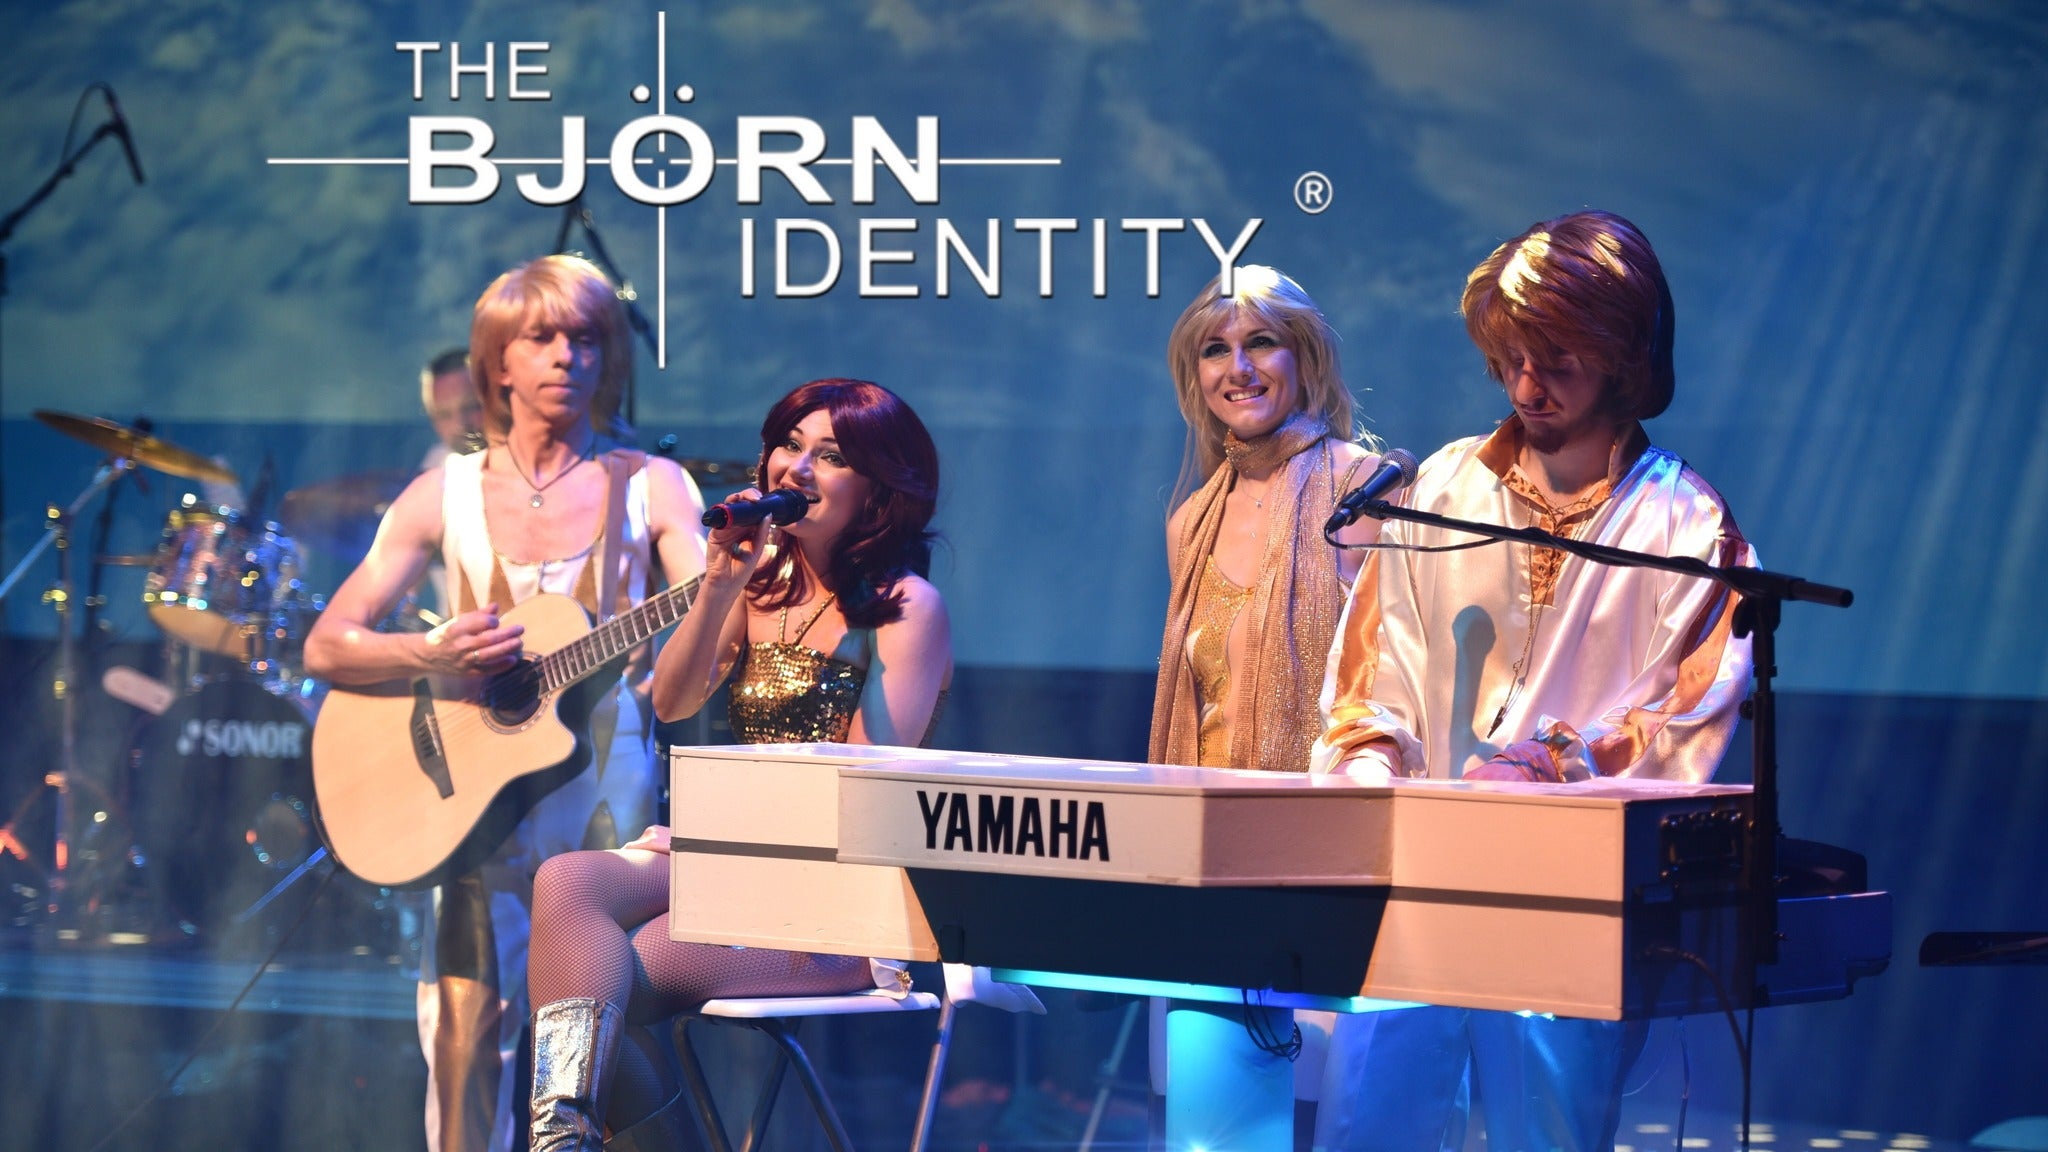 Abba Starring the Bjorn Identity tickets (Copyright © Ticketmaster)